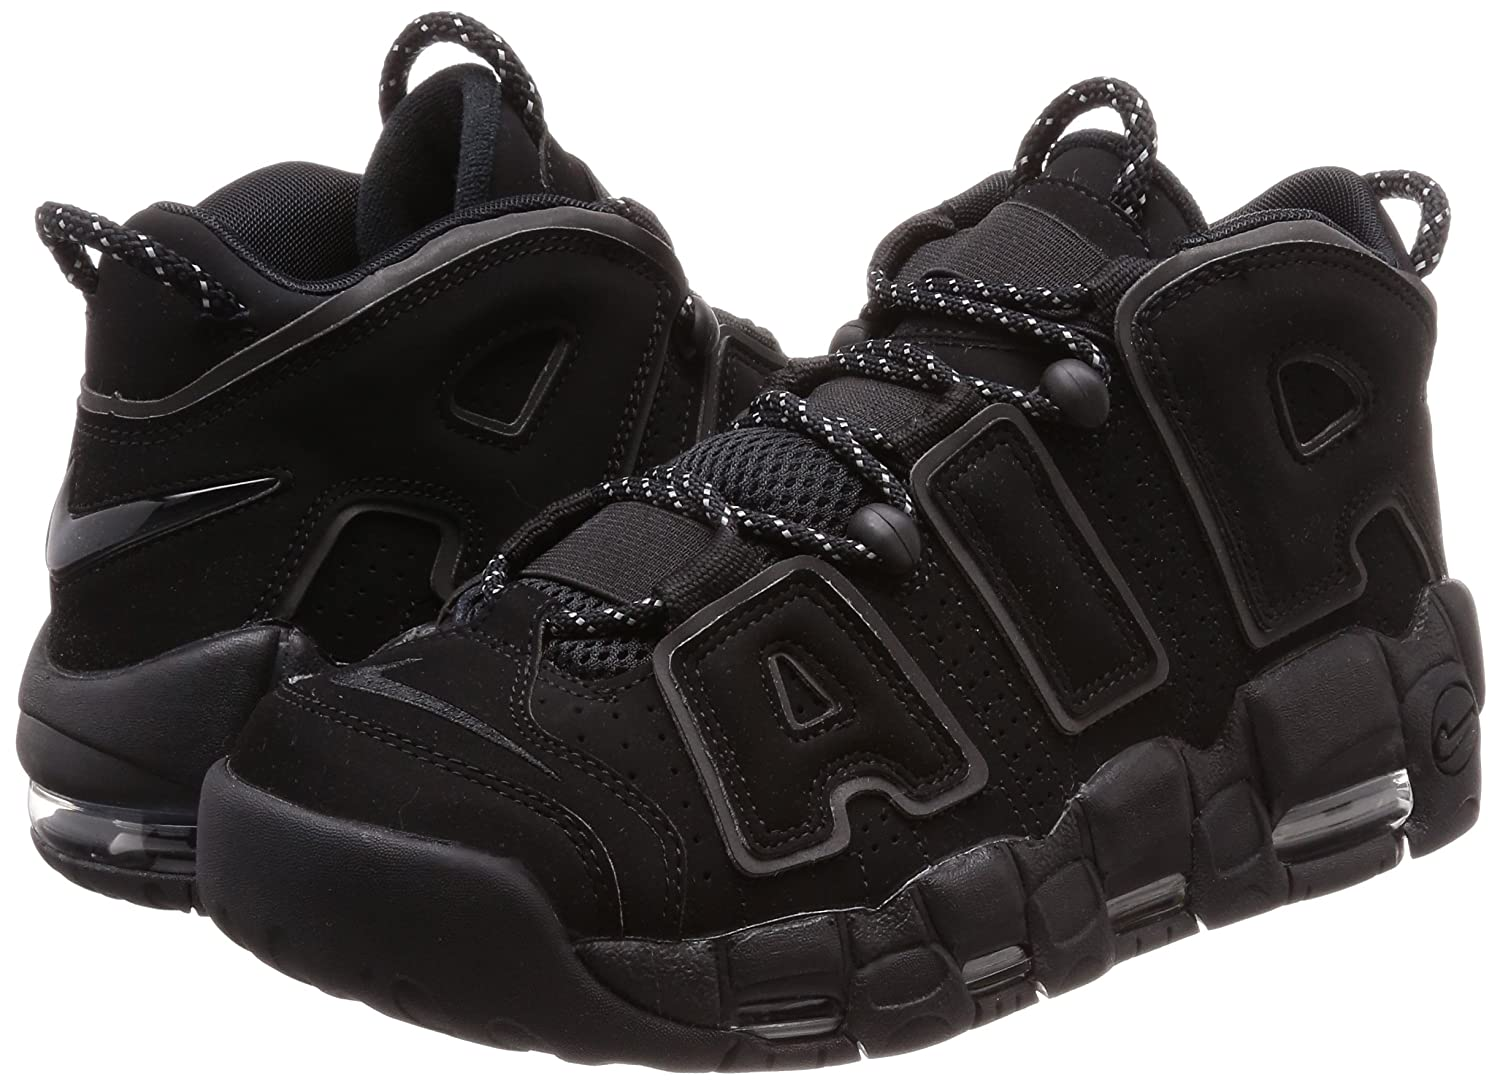 detailed look a61b3 7956a AIR More Uptempo  Black Reflective  - 414962-004 - Size 10 -  Amazon.co.uk   Shoes   Bags